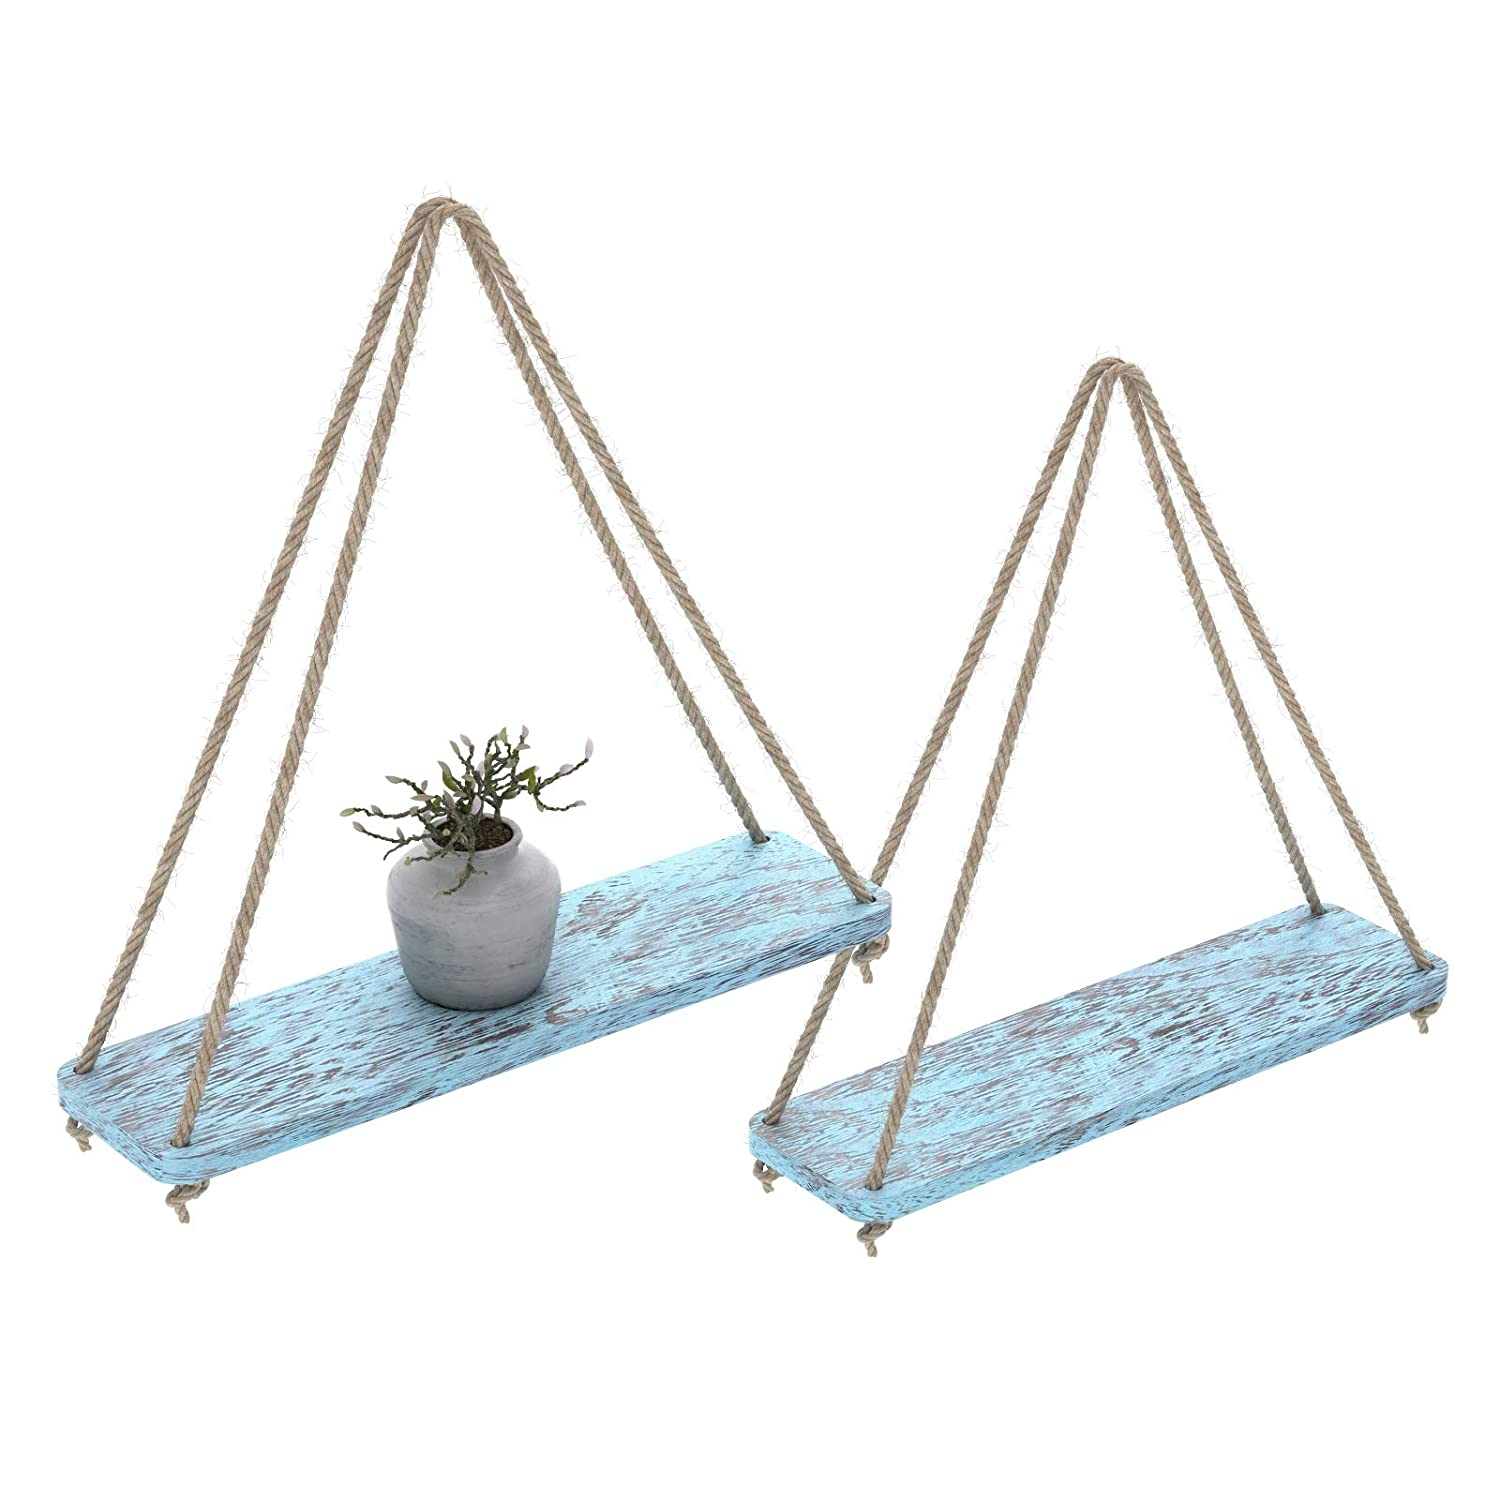 """Rustic Set of 2 Wooden Floating Shelves with String – Farmhouse Hanging Shelves for Living Room Wall – Small Kitchen Shelves with Rope – 17""""x5.2"""" – Distressed, Rustic Blue Color"""